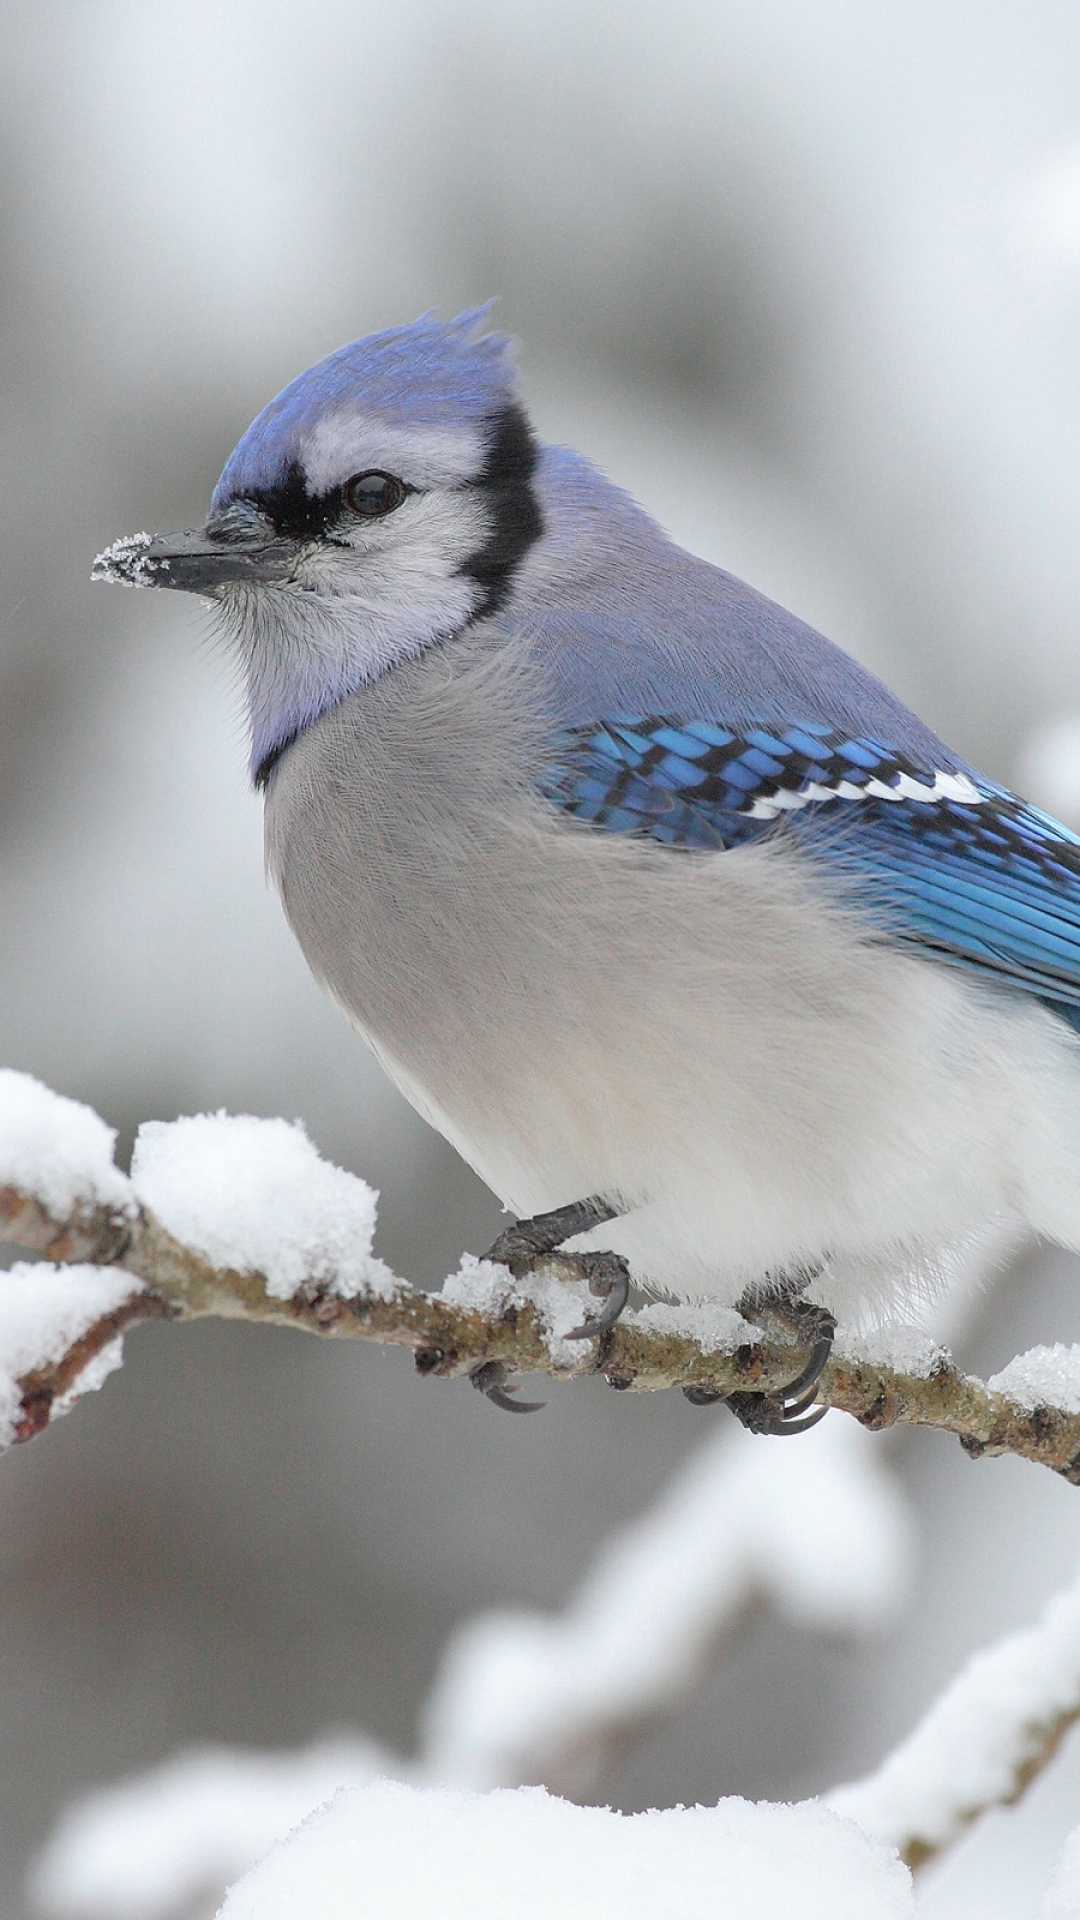 Blue-jay-sitting-on-a-snowy-branch-wallpaper-wpc9003046